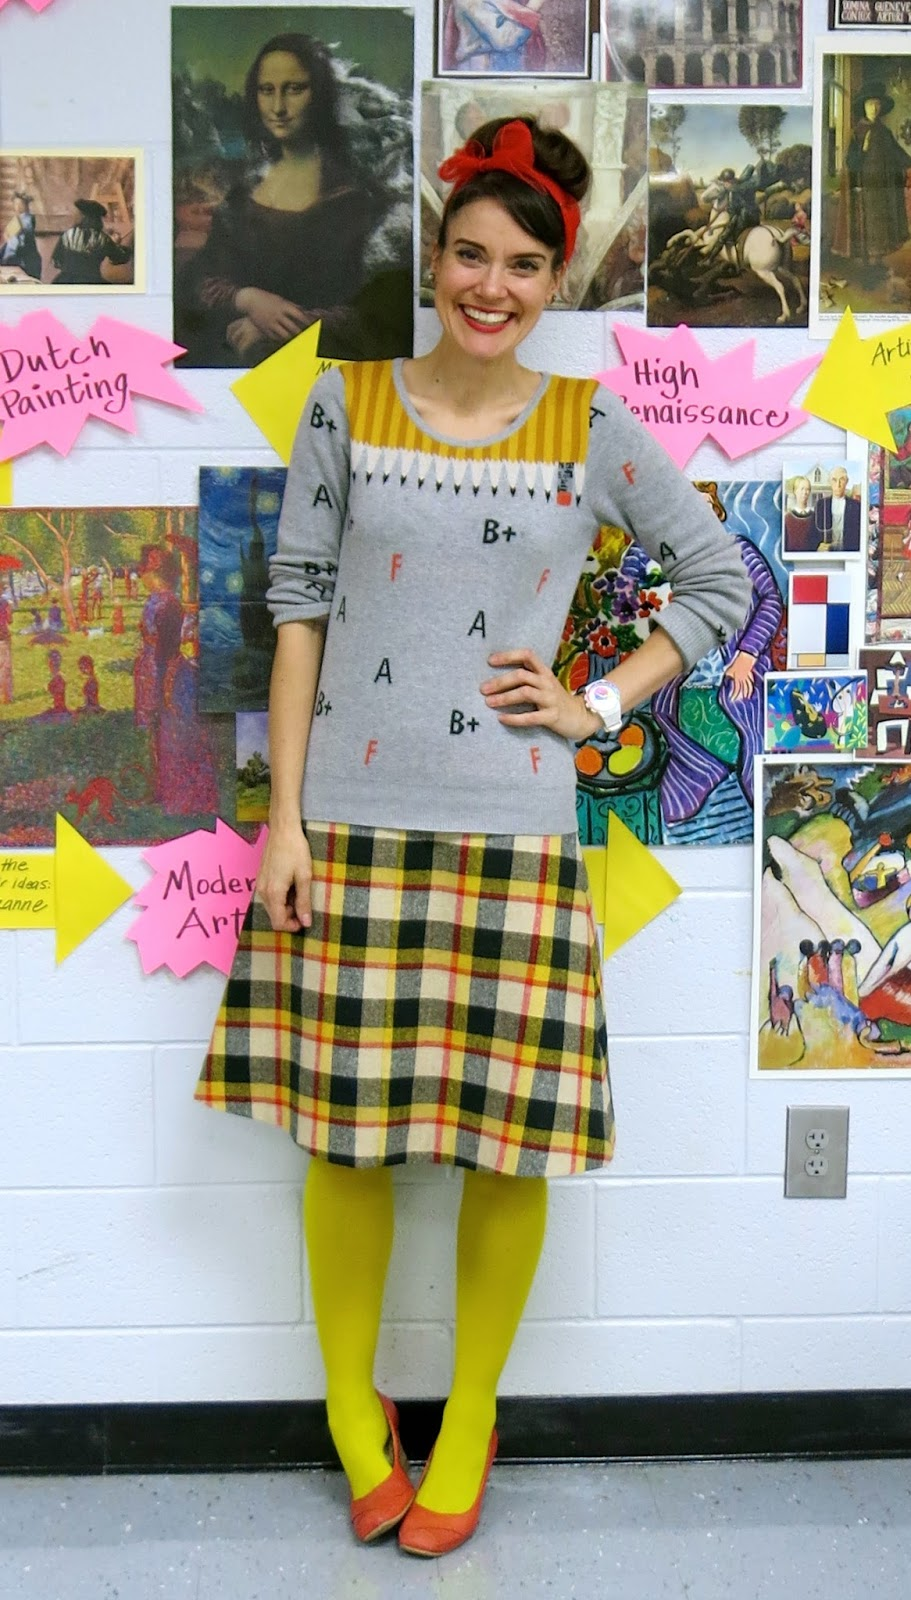 wonderful outfits for art 8